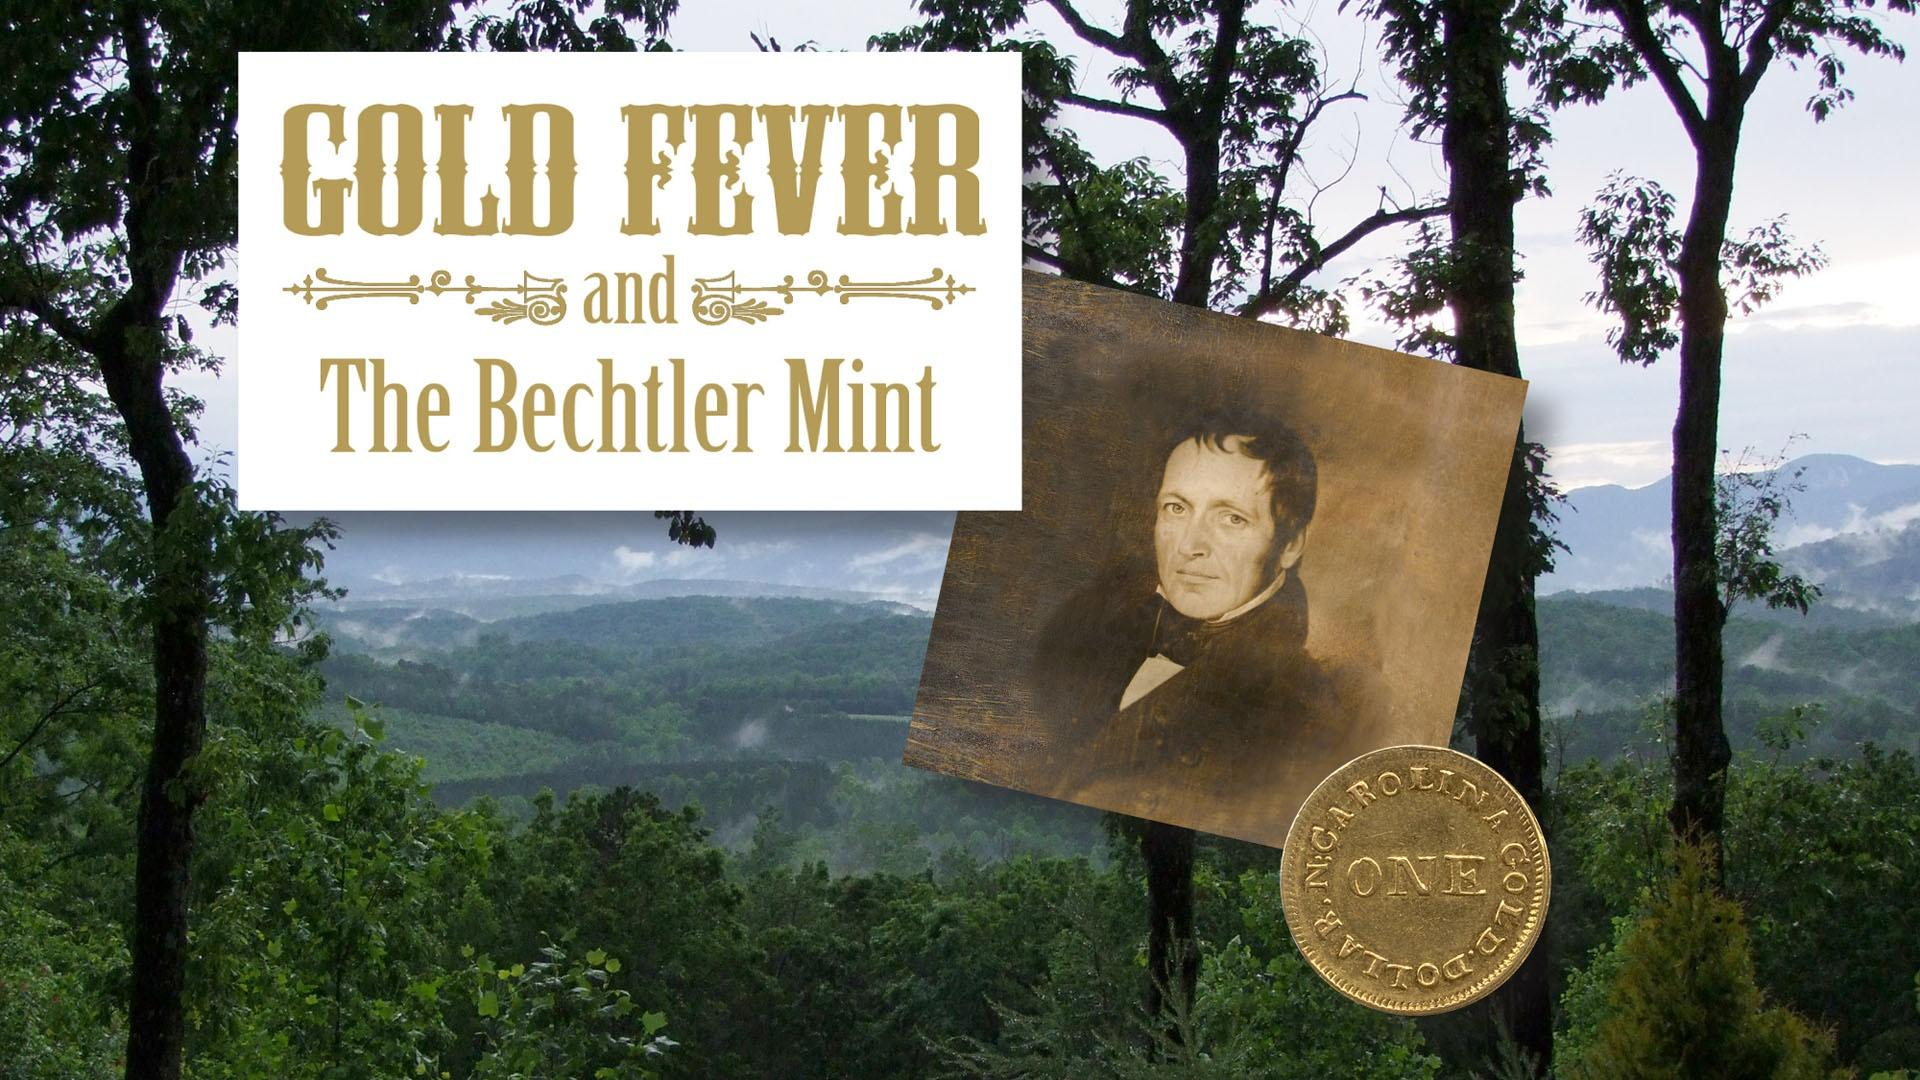 Goldfever - The Bechtler Mint